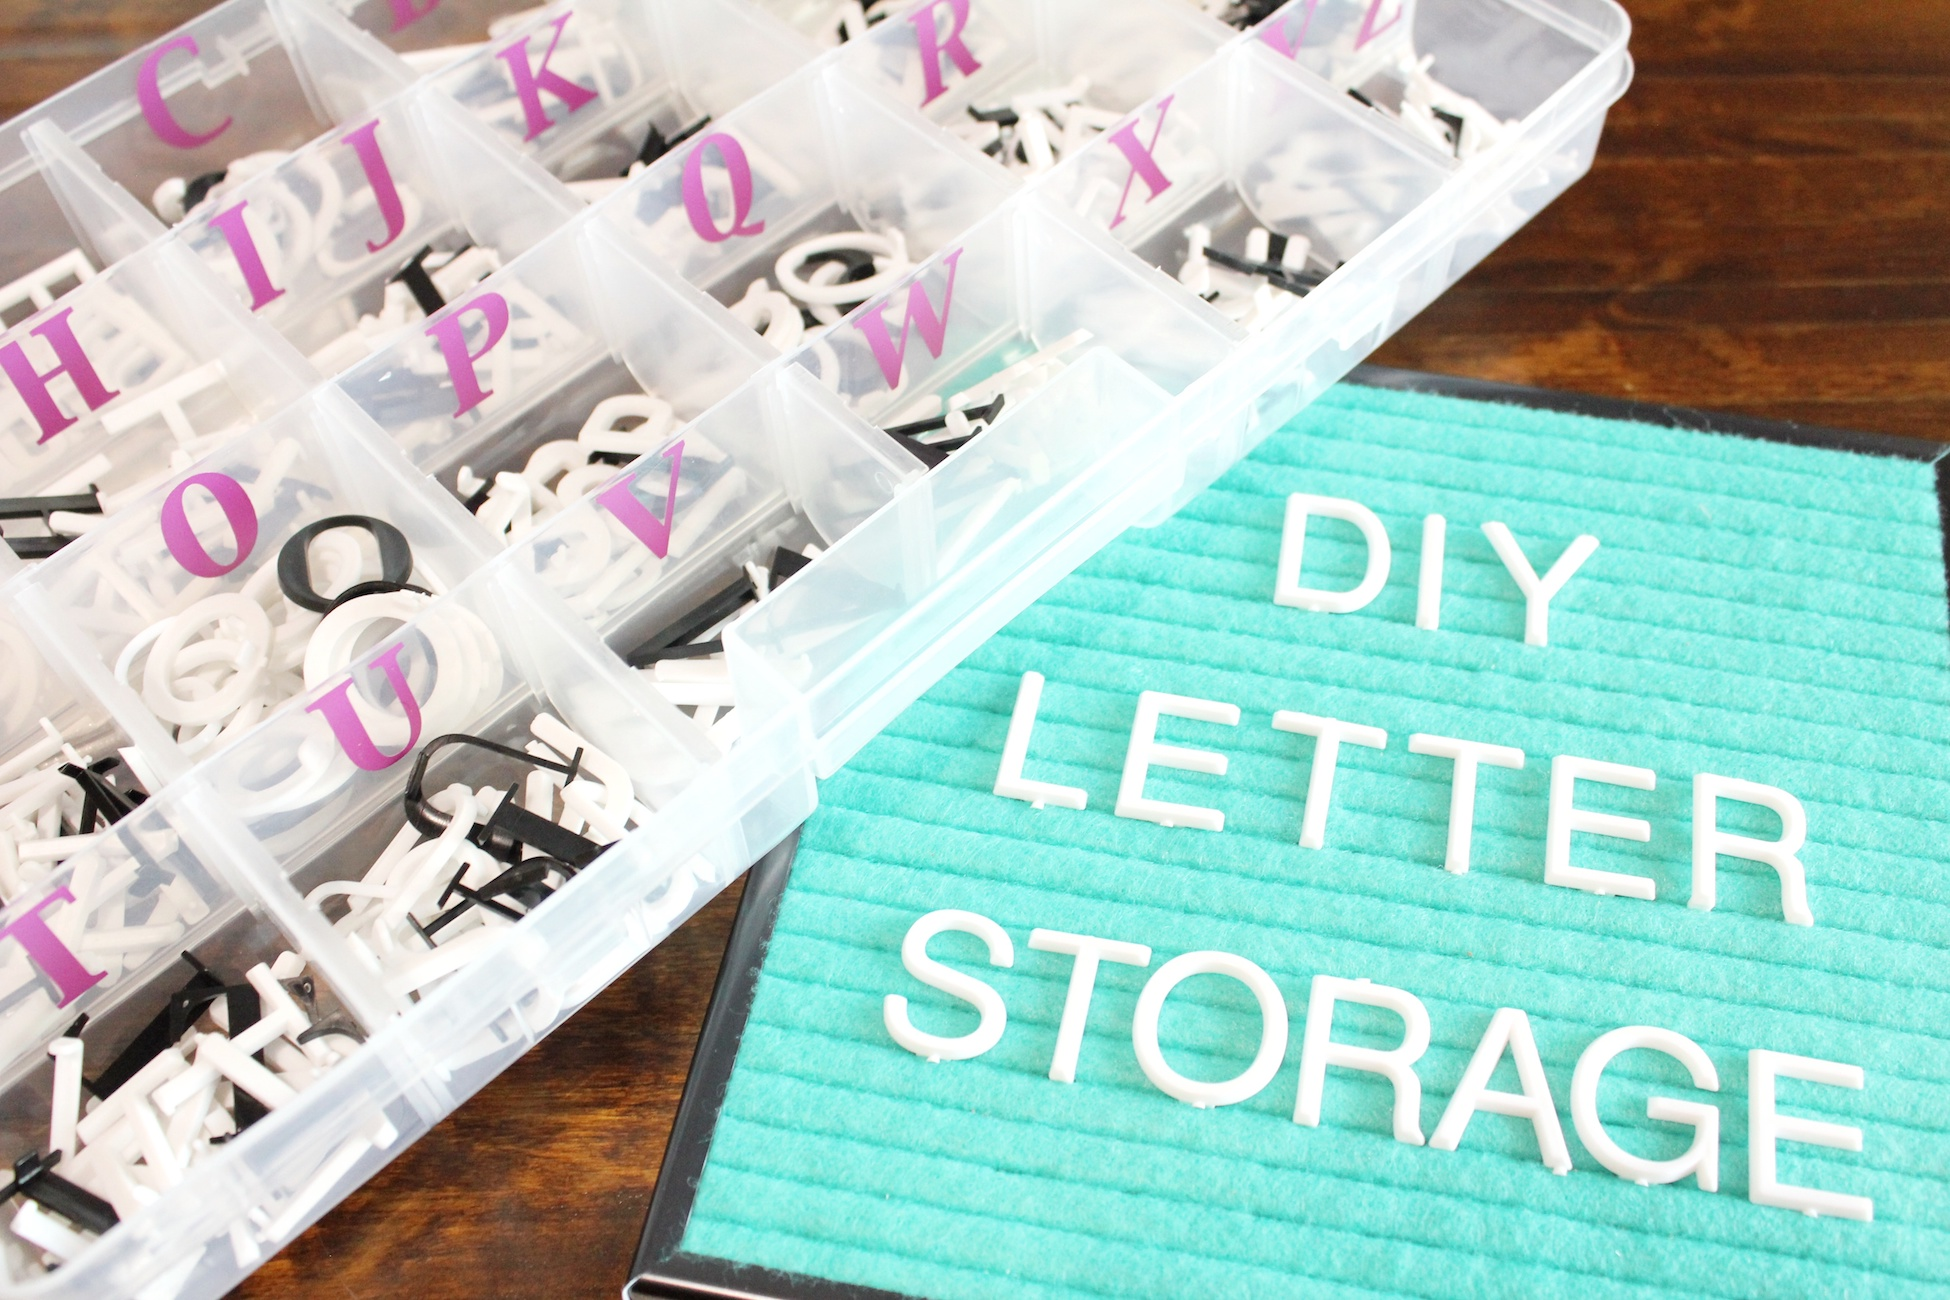 DIY Letterboard Letter Storage - Simple and inexpensive way to organize and store numbers and letters for your letter boards